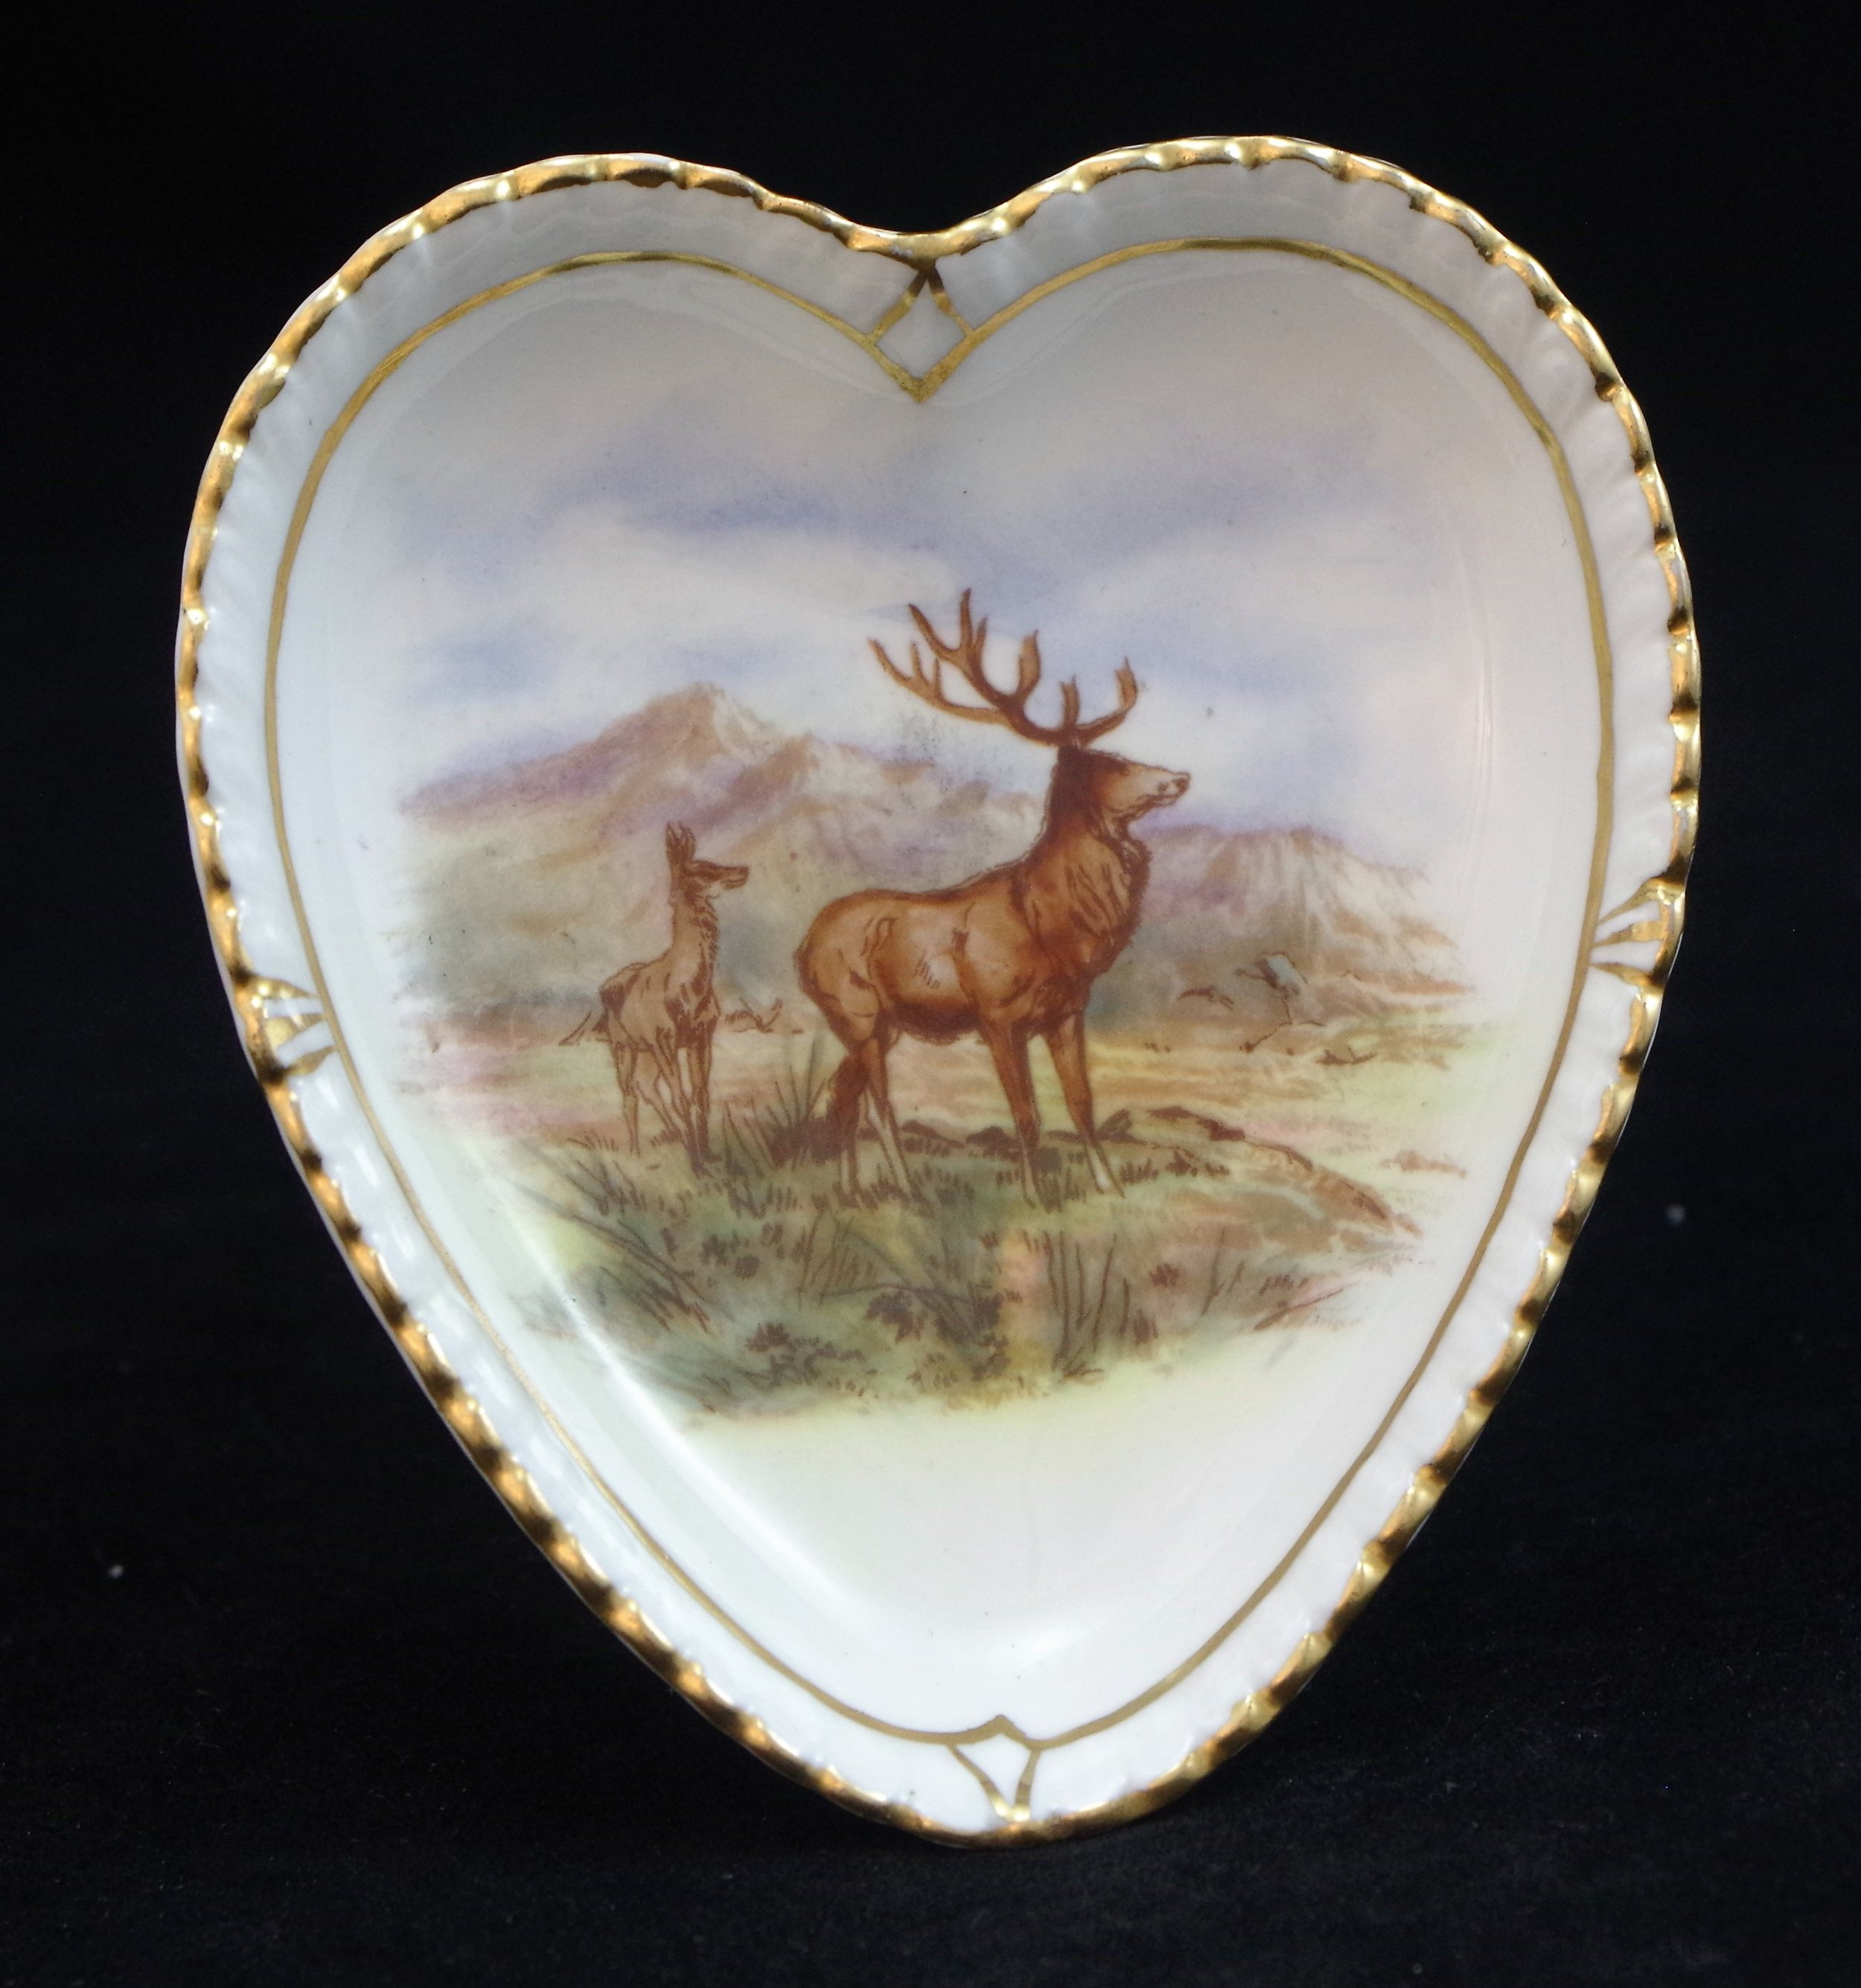 royal-crown-derby-heart-shape-gadroon-tray-stag-hunting-scene